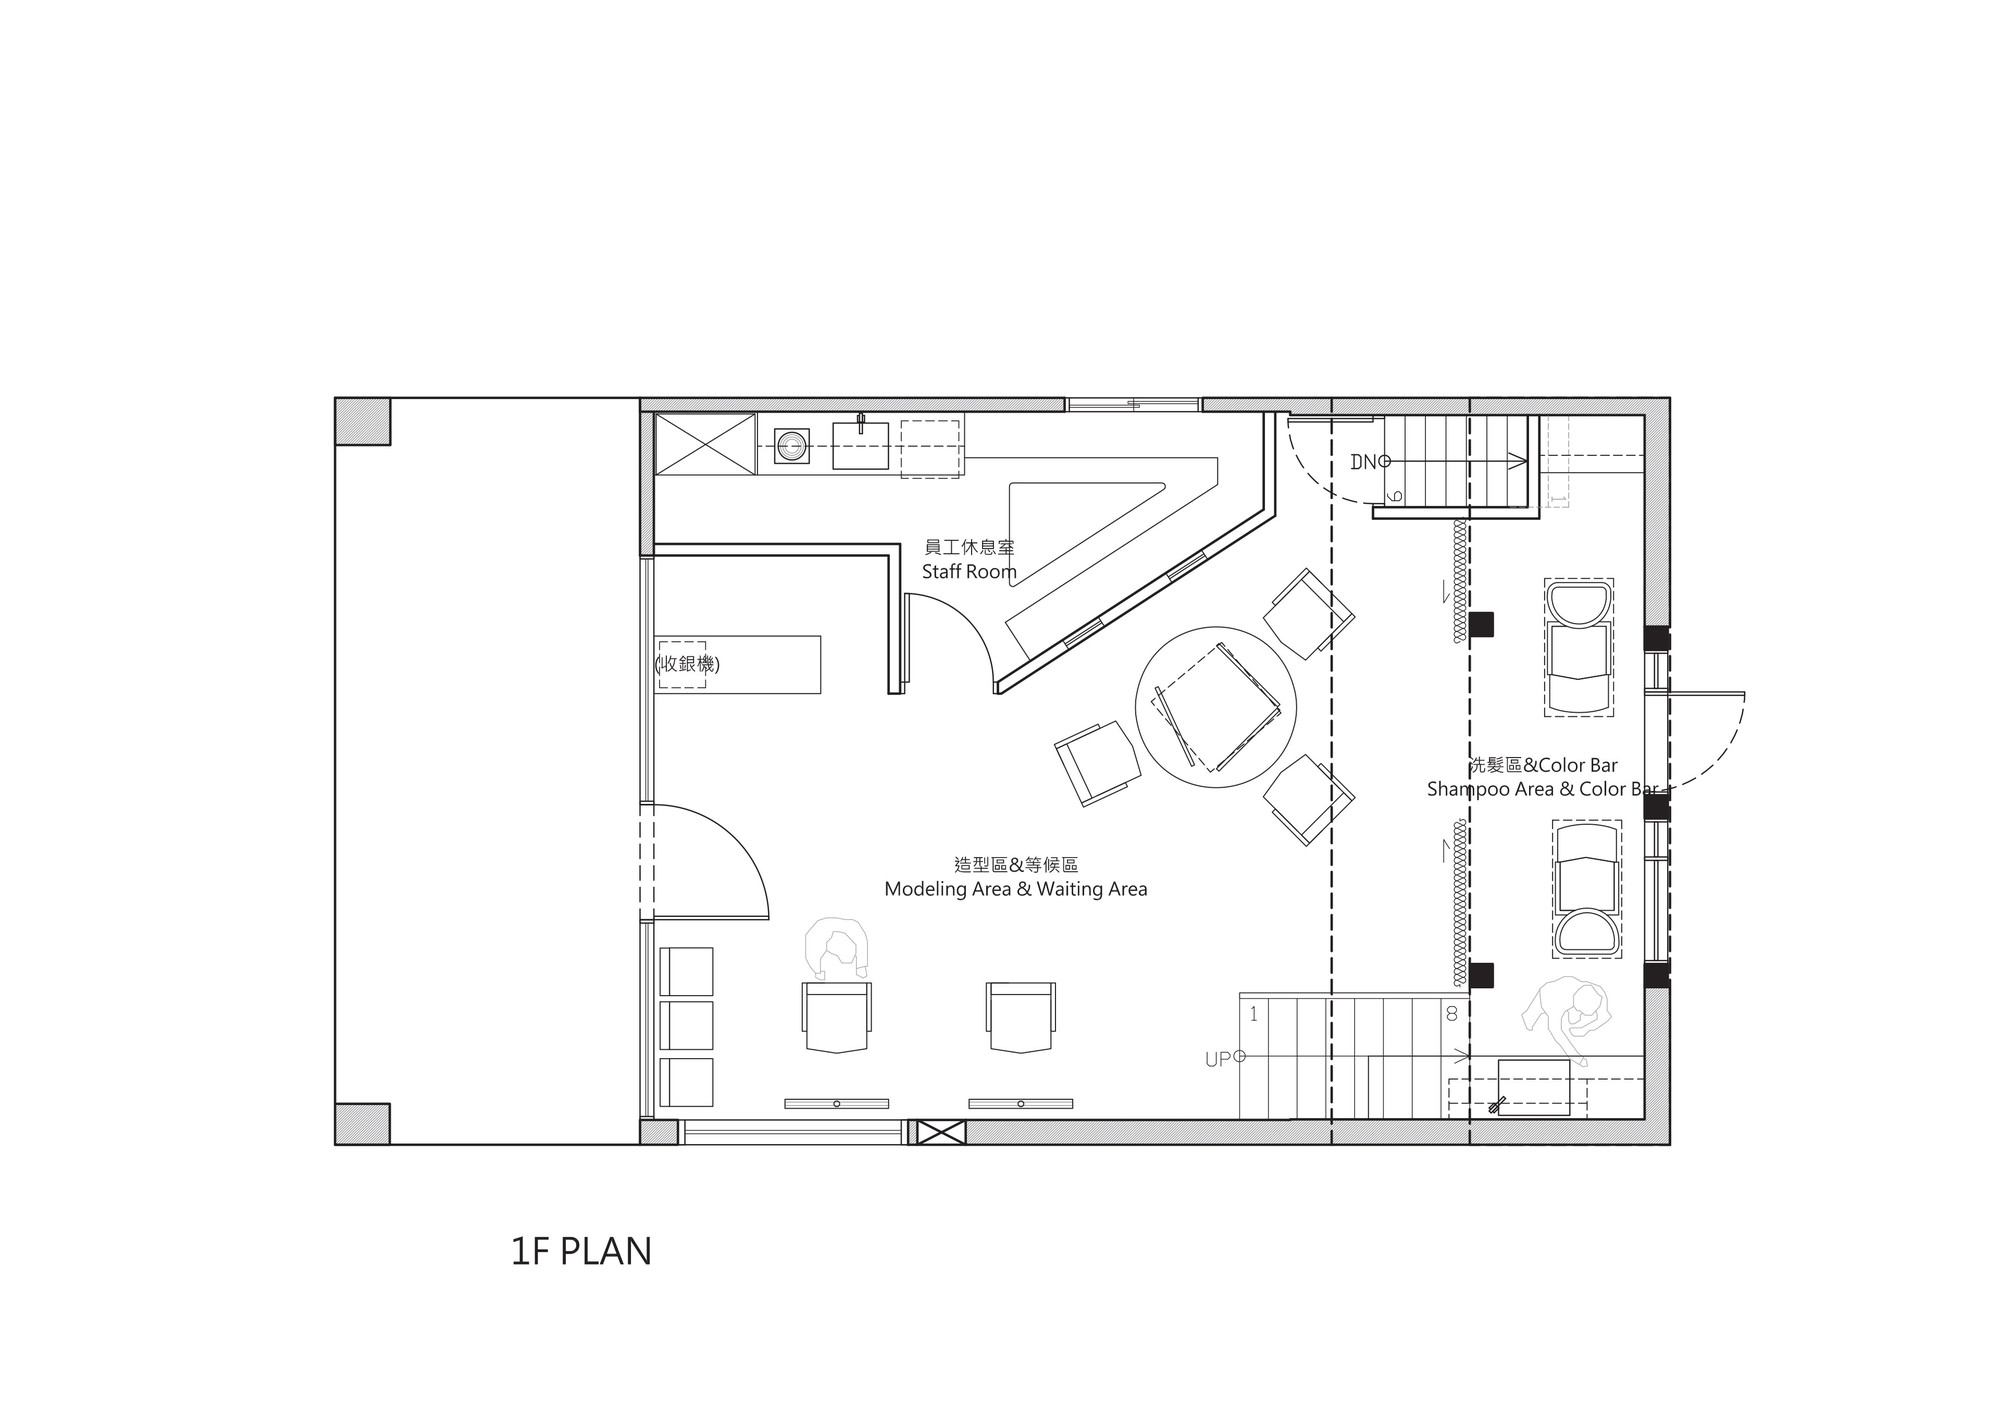 Photo studio 54 floor plan images fair 40 efficiency for Photography studio floor plans